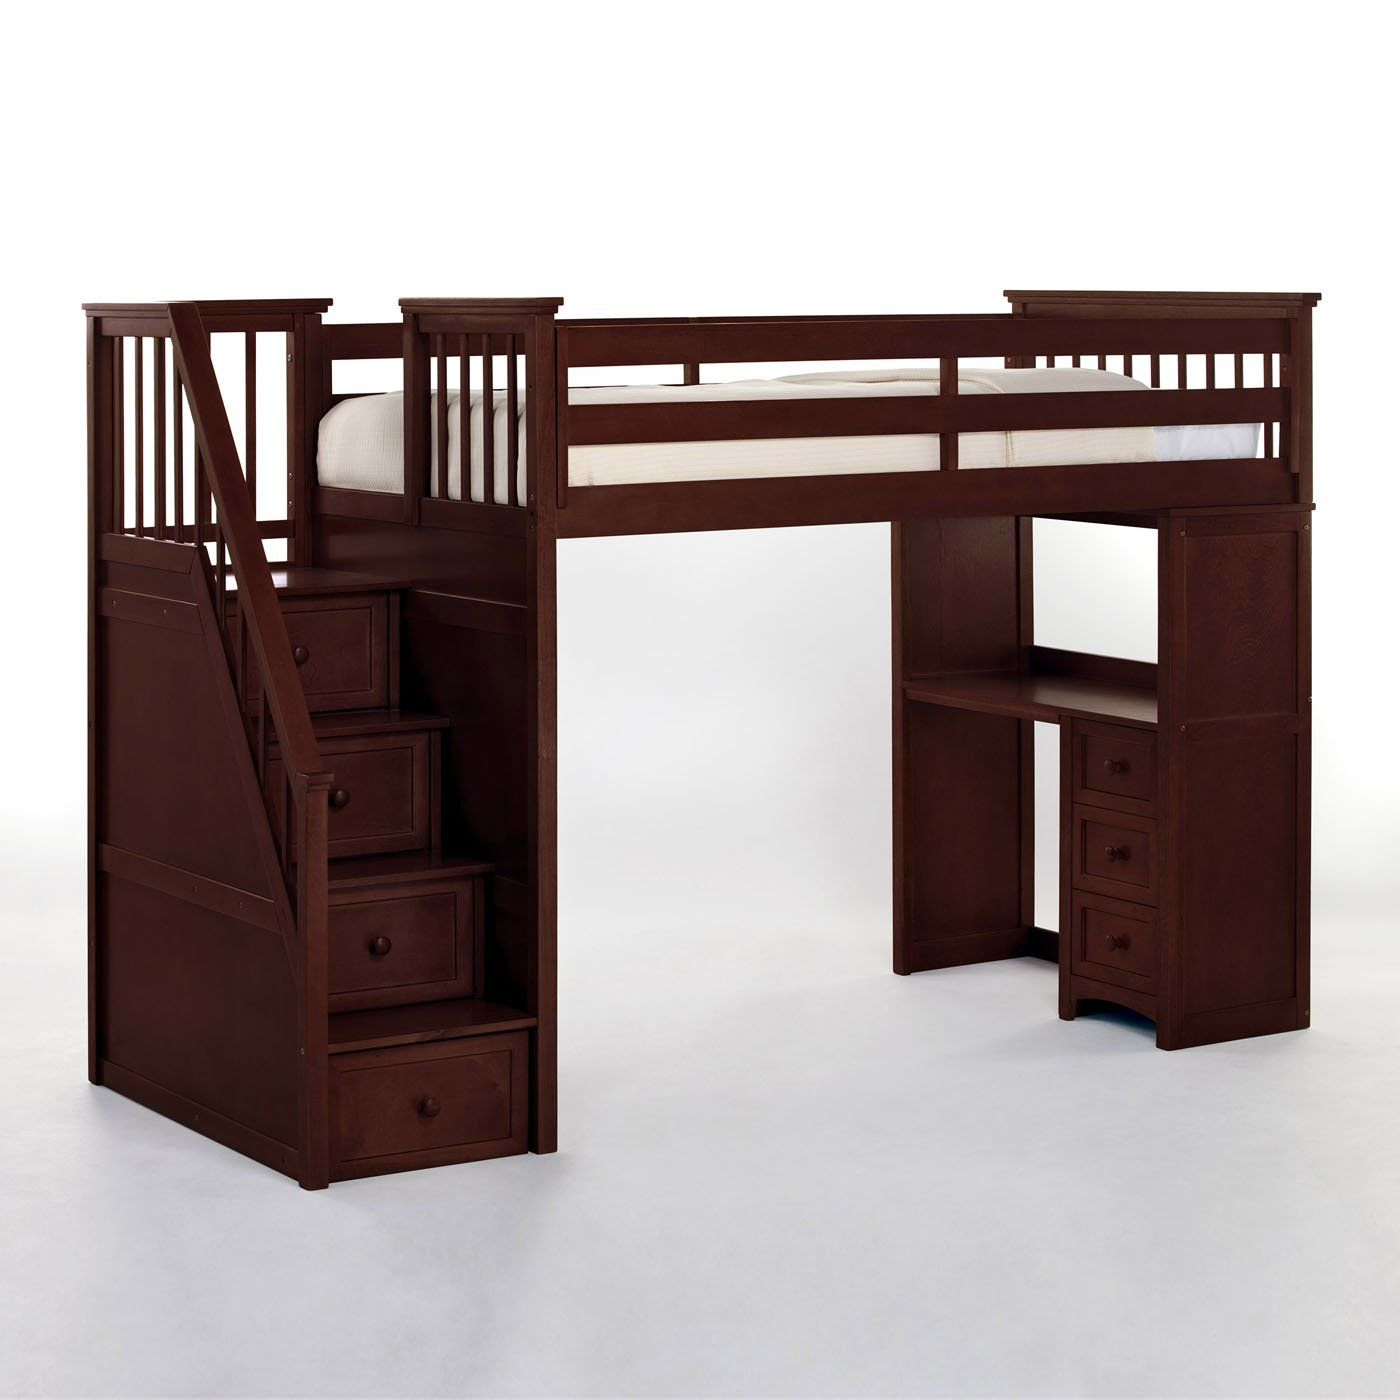 Loft bed with stairs and desk  NE Kids School House Stair Loft Bunk Bed  K I D S D E C O R